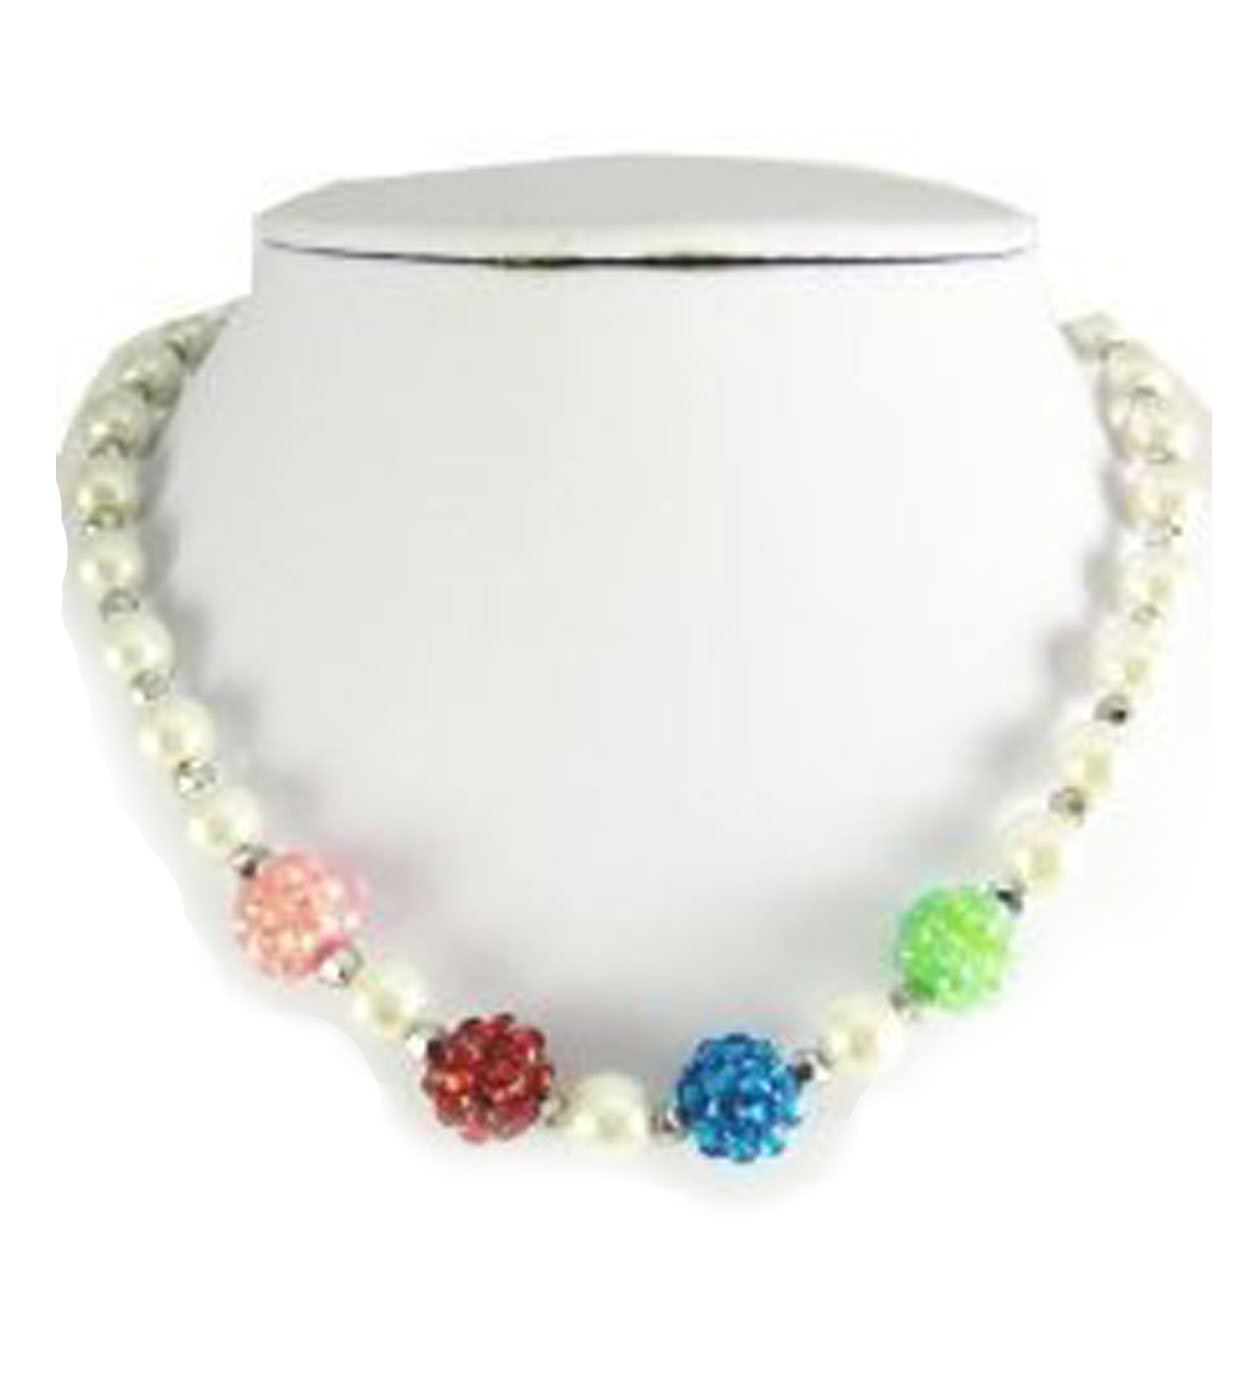 V G S Eternity Fashions Fashion Jewelry ~Girls Pearls Set~ Imitation Pearls Accented with Multi Crystals (Multi)